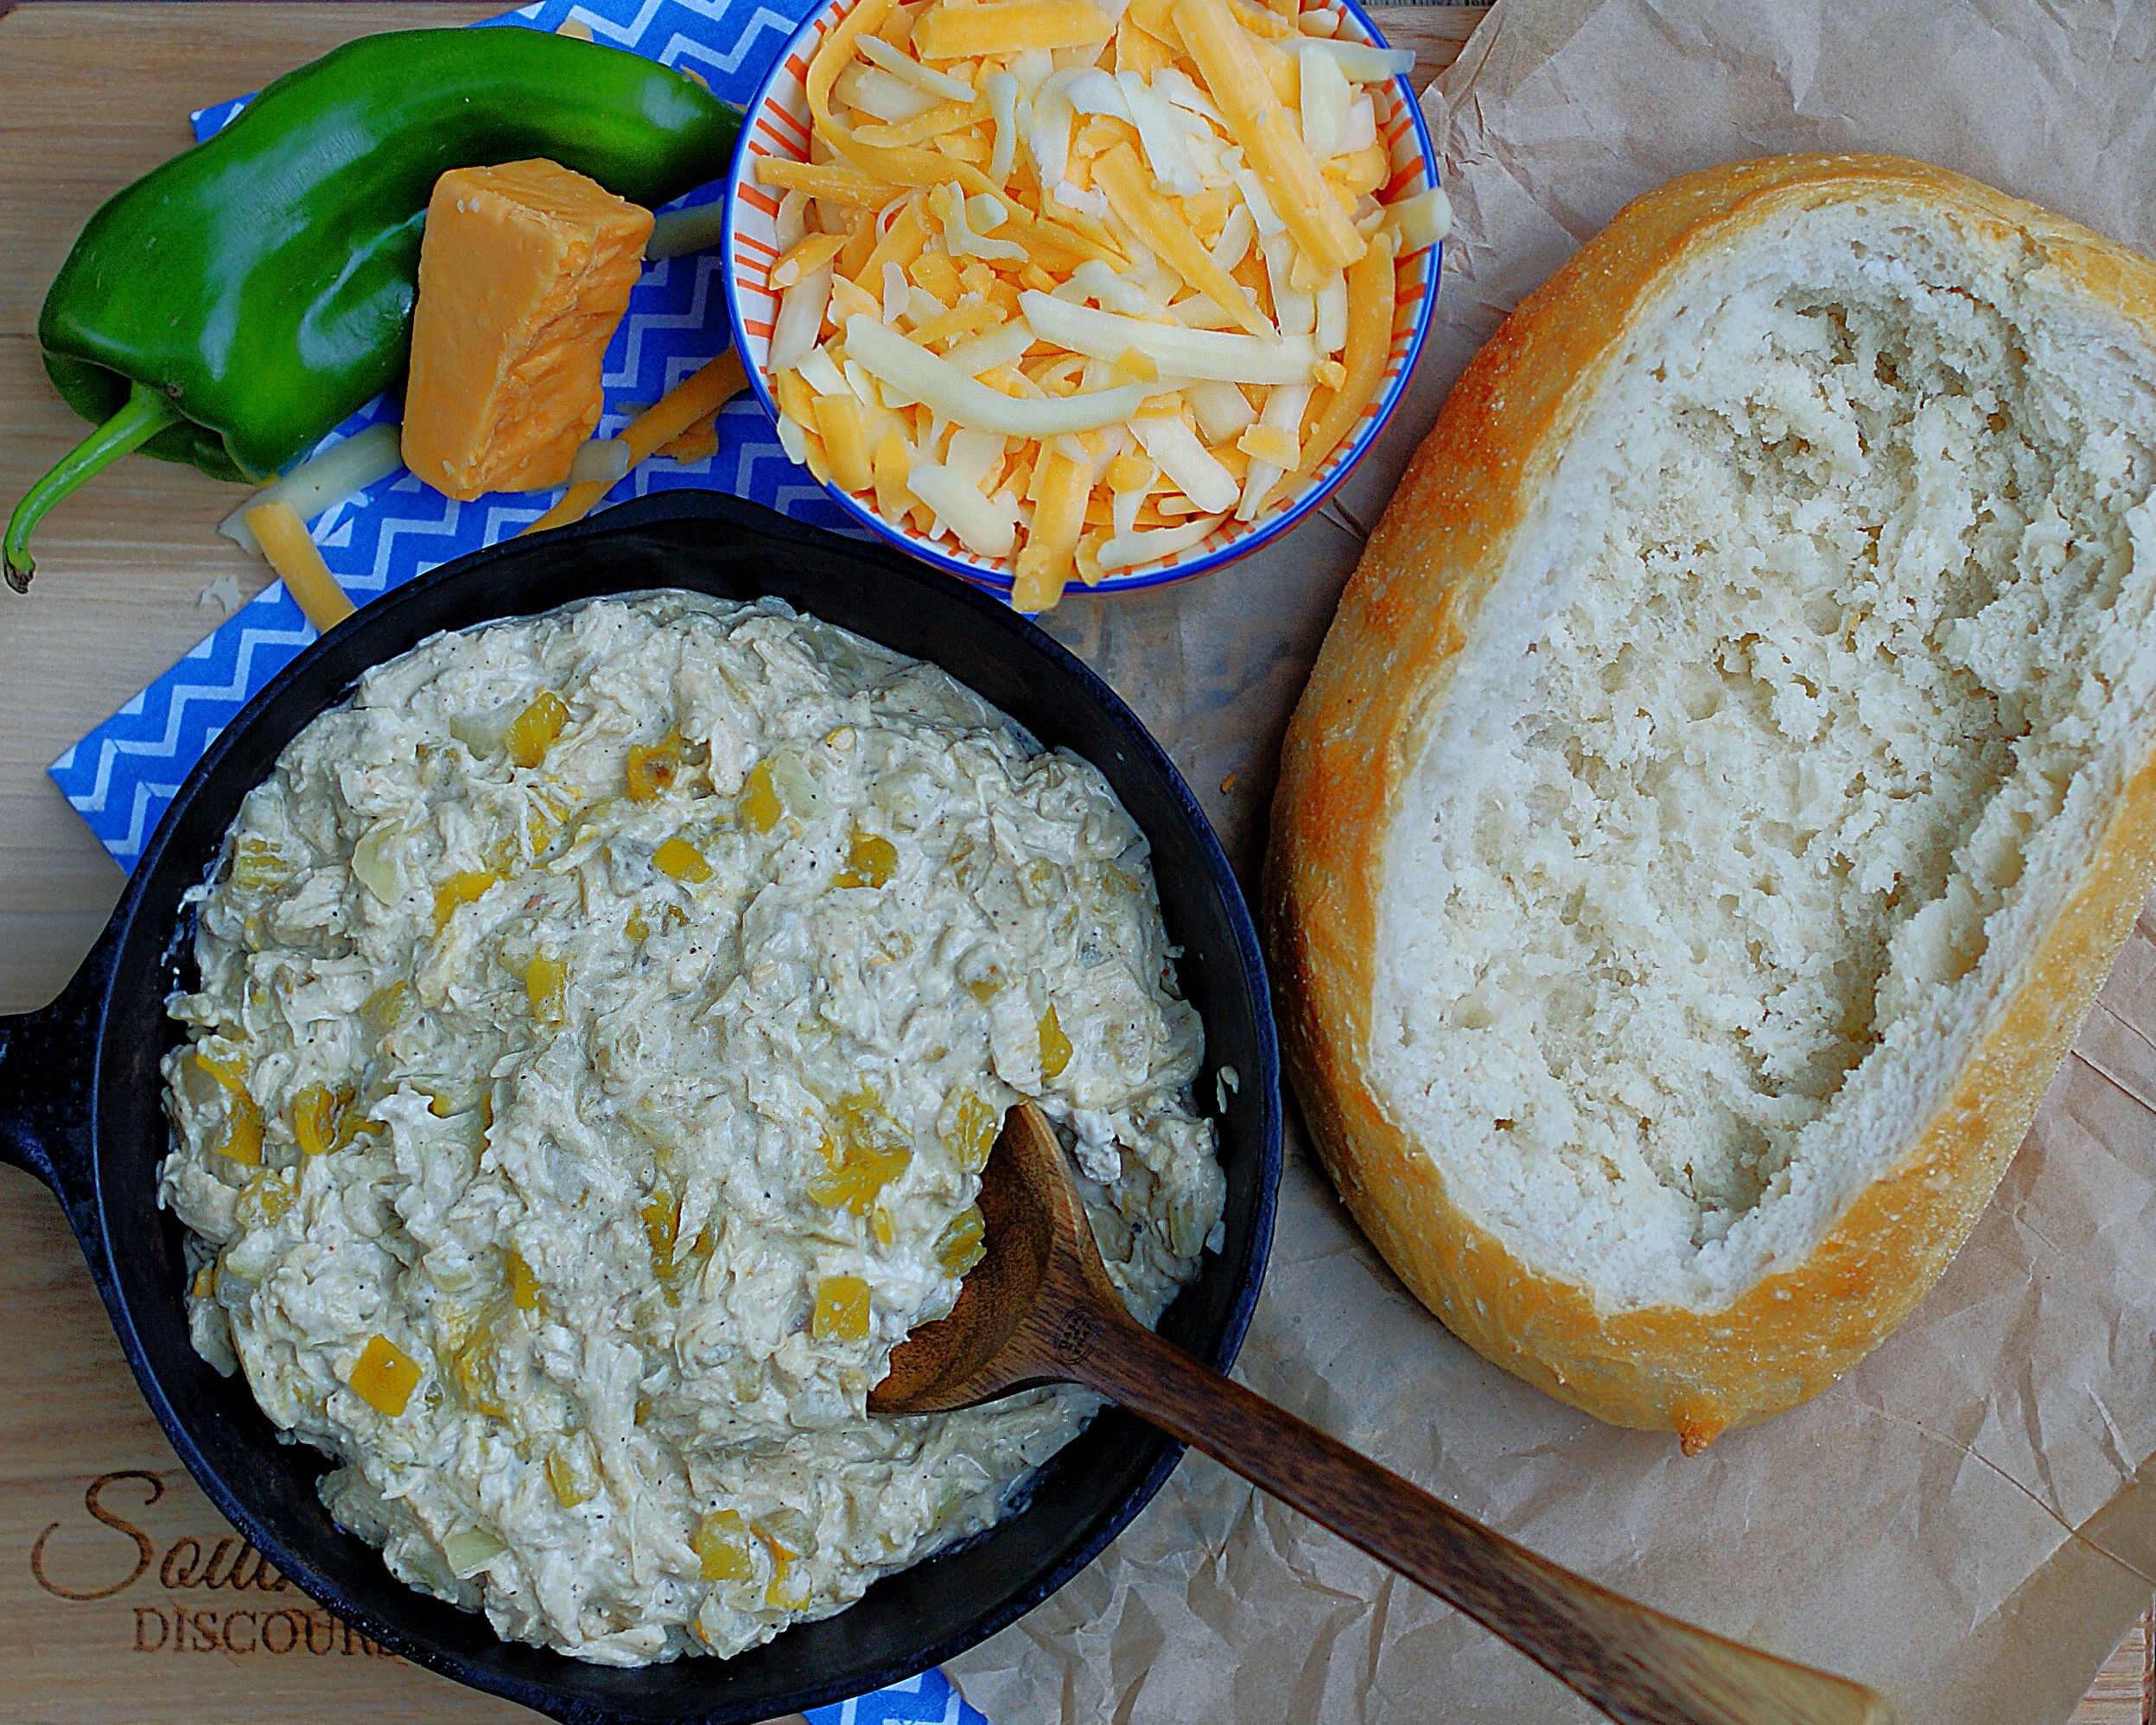 The ingredients for Green Chili Chicken Stuffed Bread